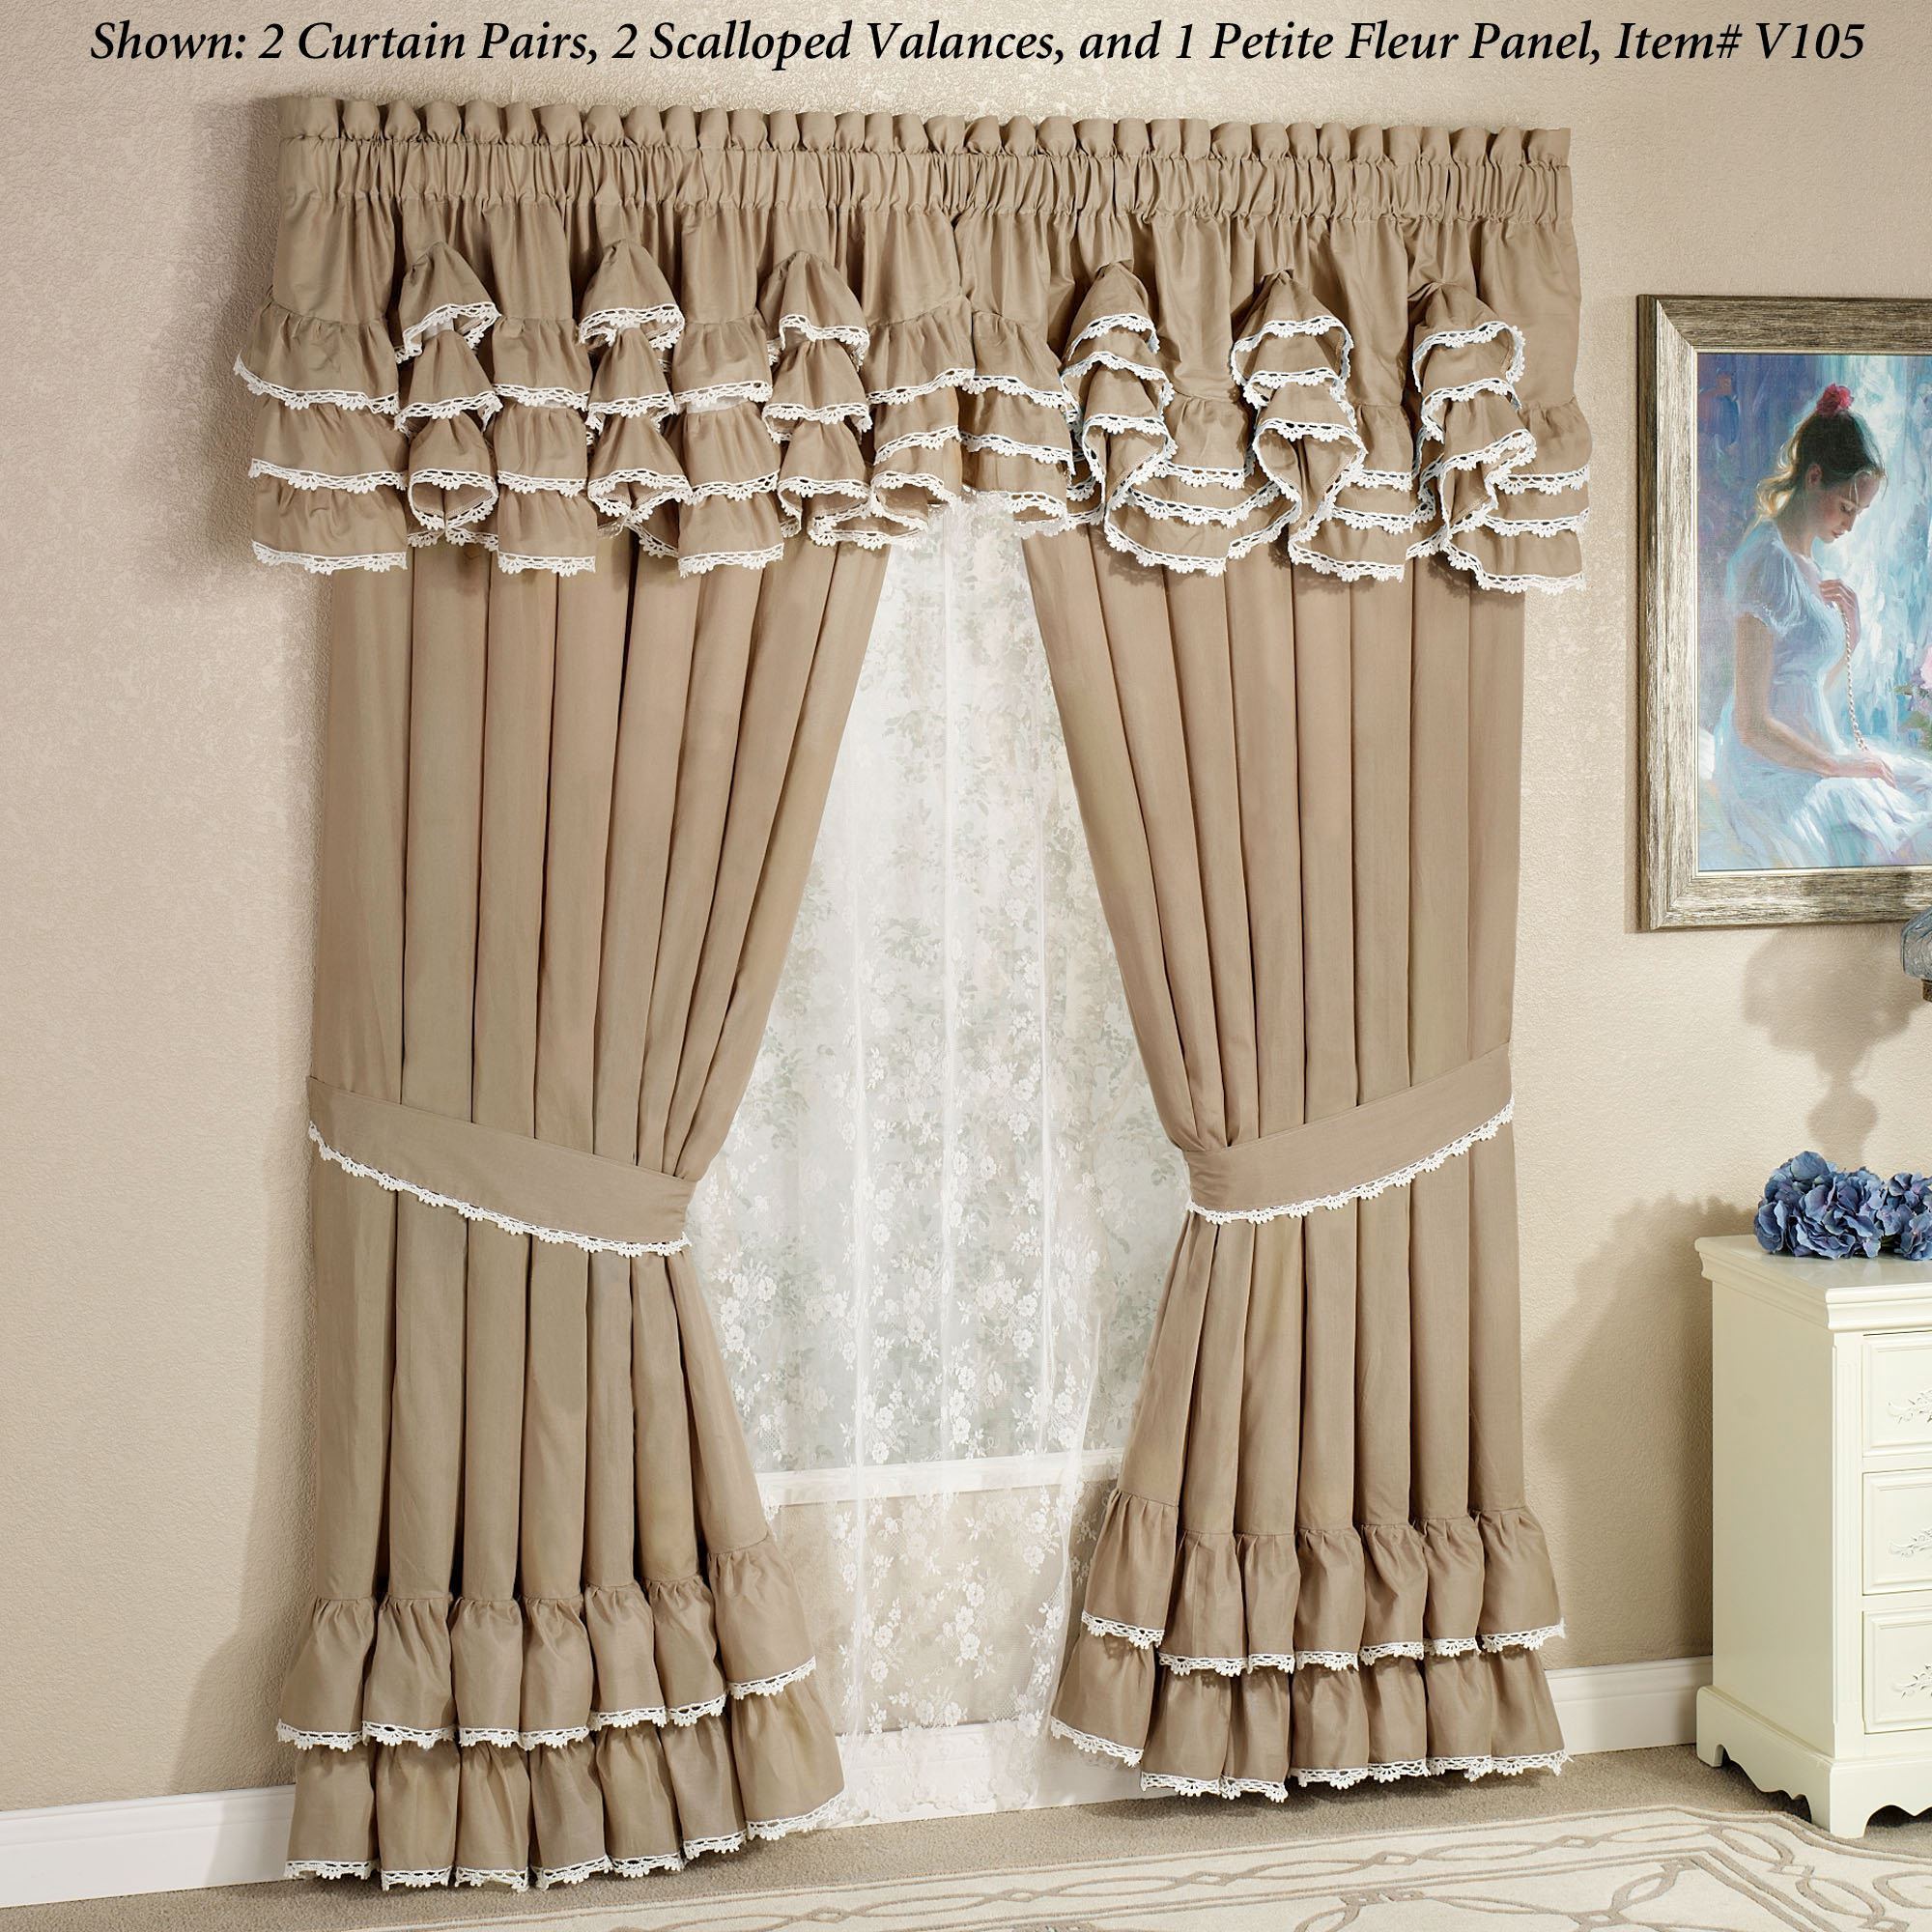 Antiquity Scalloped Valance Window Treatment